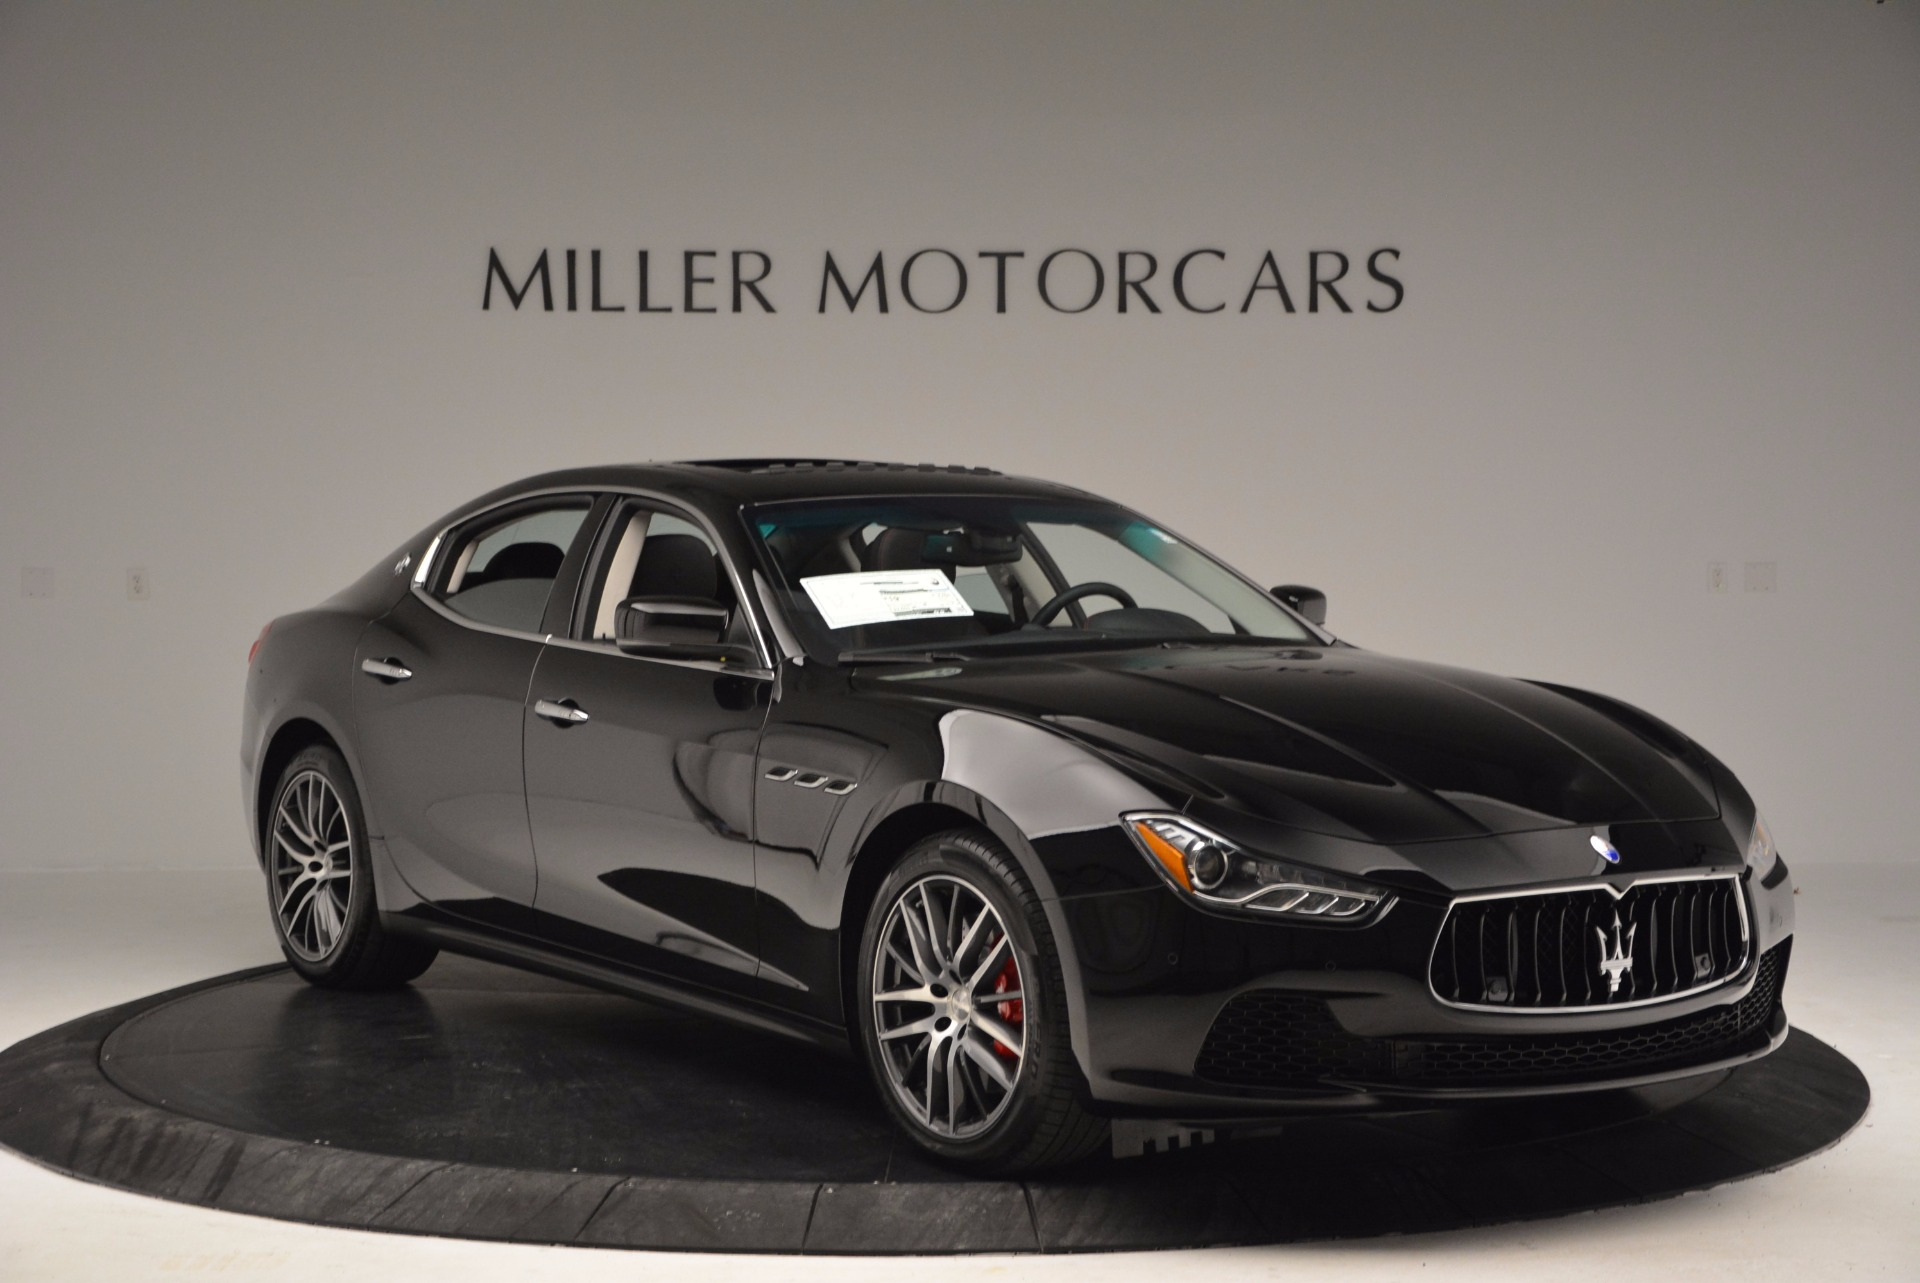 New 2017 Maserati Ghibli S Q4 For Sale In Greenwich, CT. Alfa Romeo of Greenwich, M1821 1029_p11